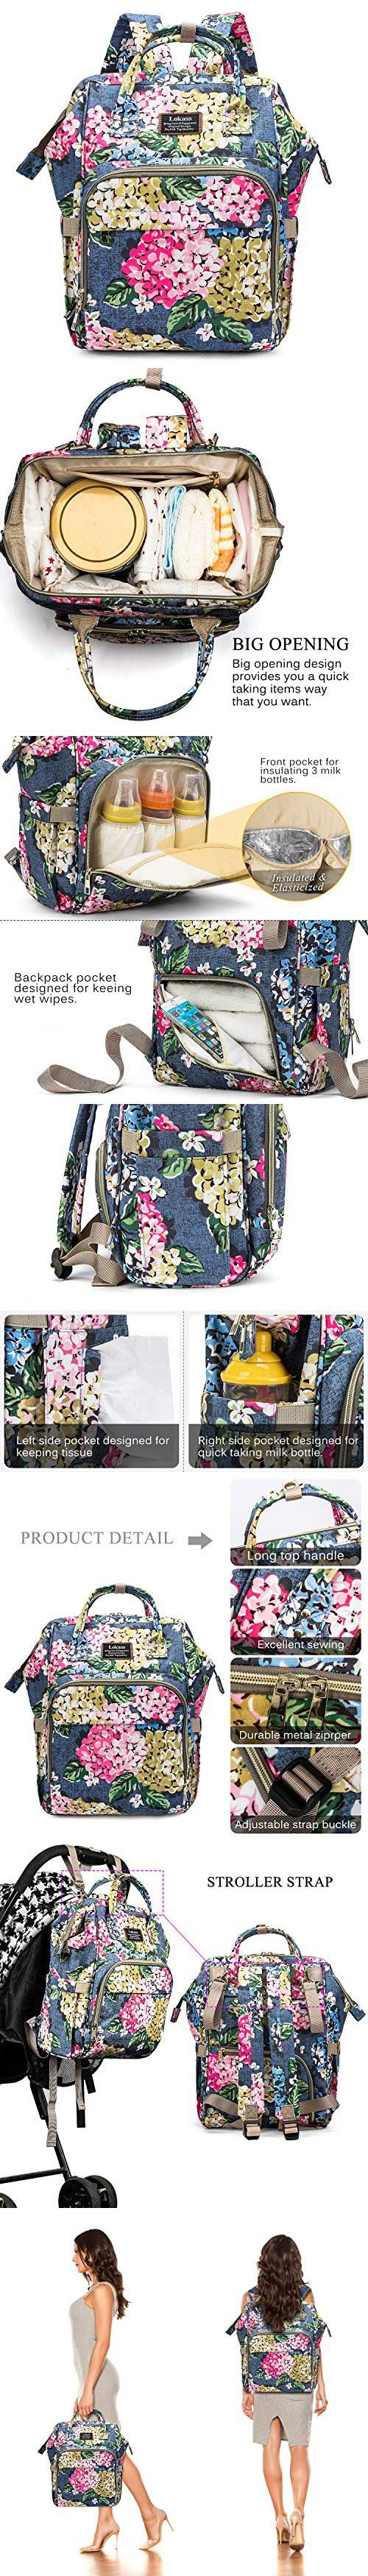 Coolbell Baby Diaper Bag Backpack Water Resistant Multi Functional